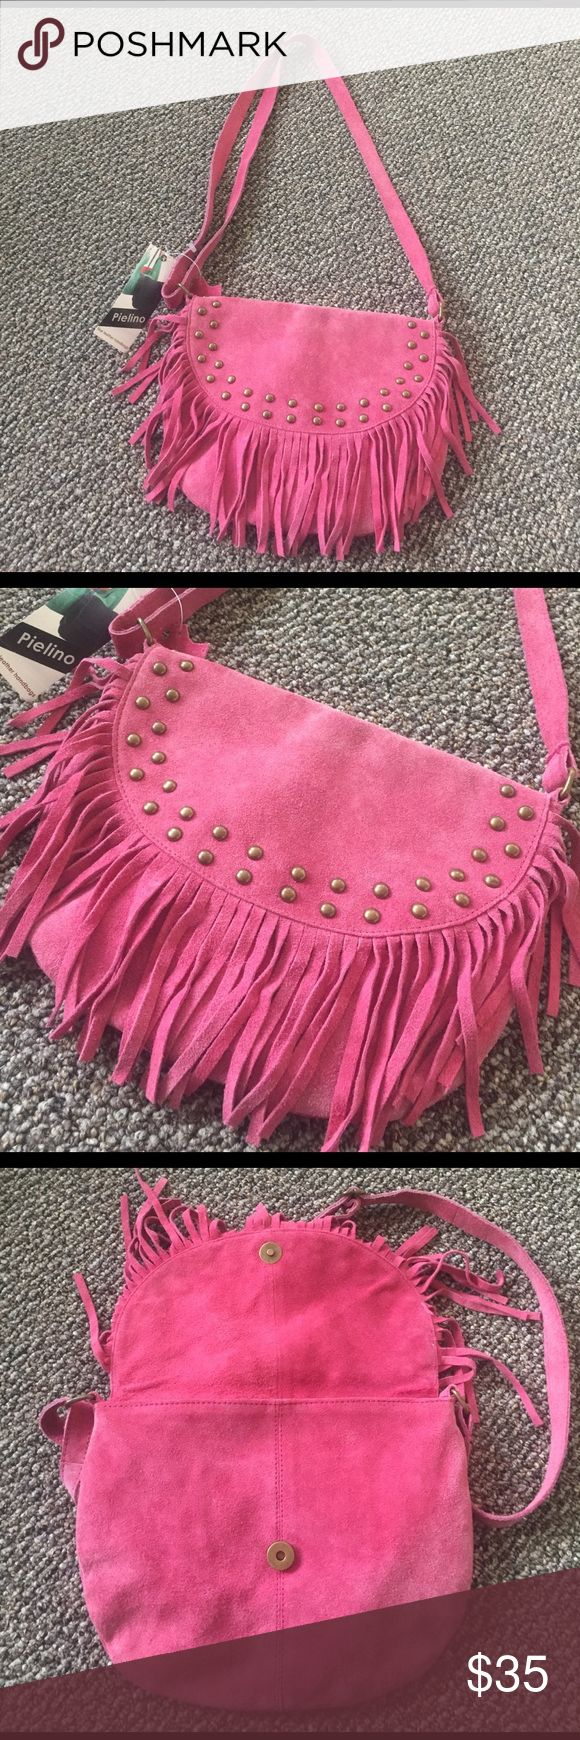 Pink suede fringe handbag w/ metal stud new w tag! Adjust the strap length to your liking. New and perfect condition! Retails $108. Wear as crossbody or shoulder bag! pielino Bags Shoulder Bags